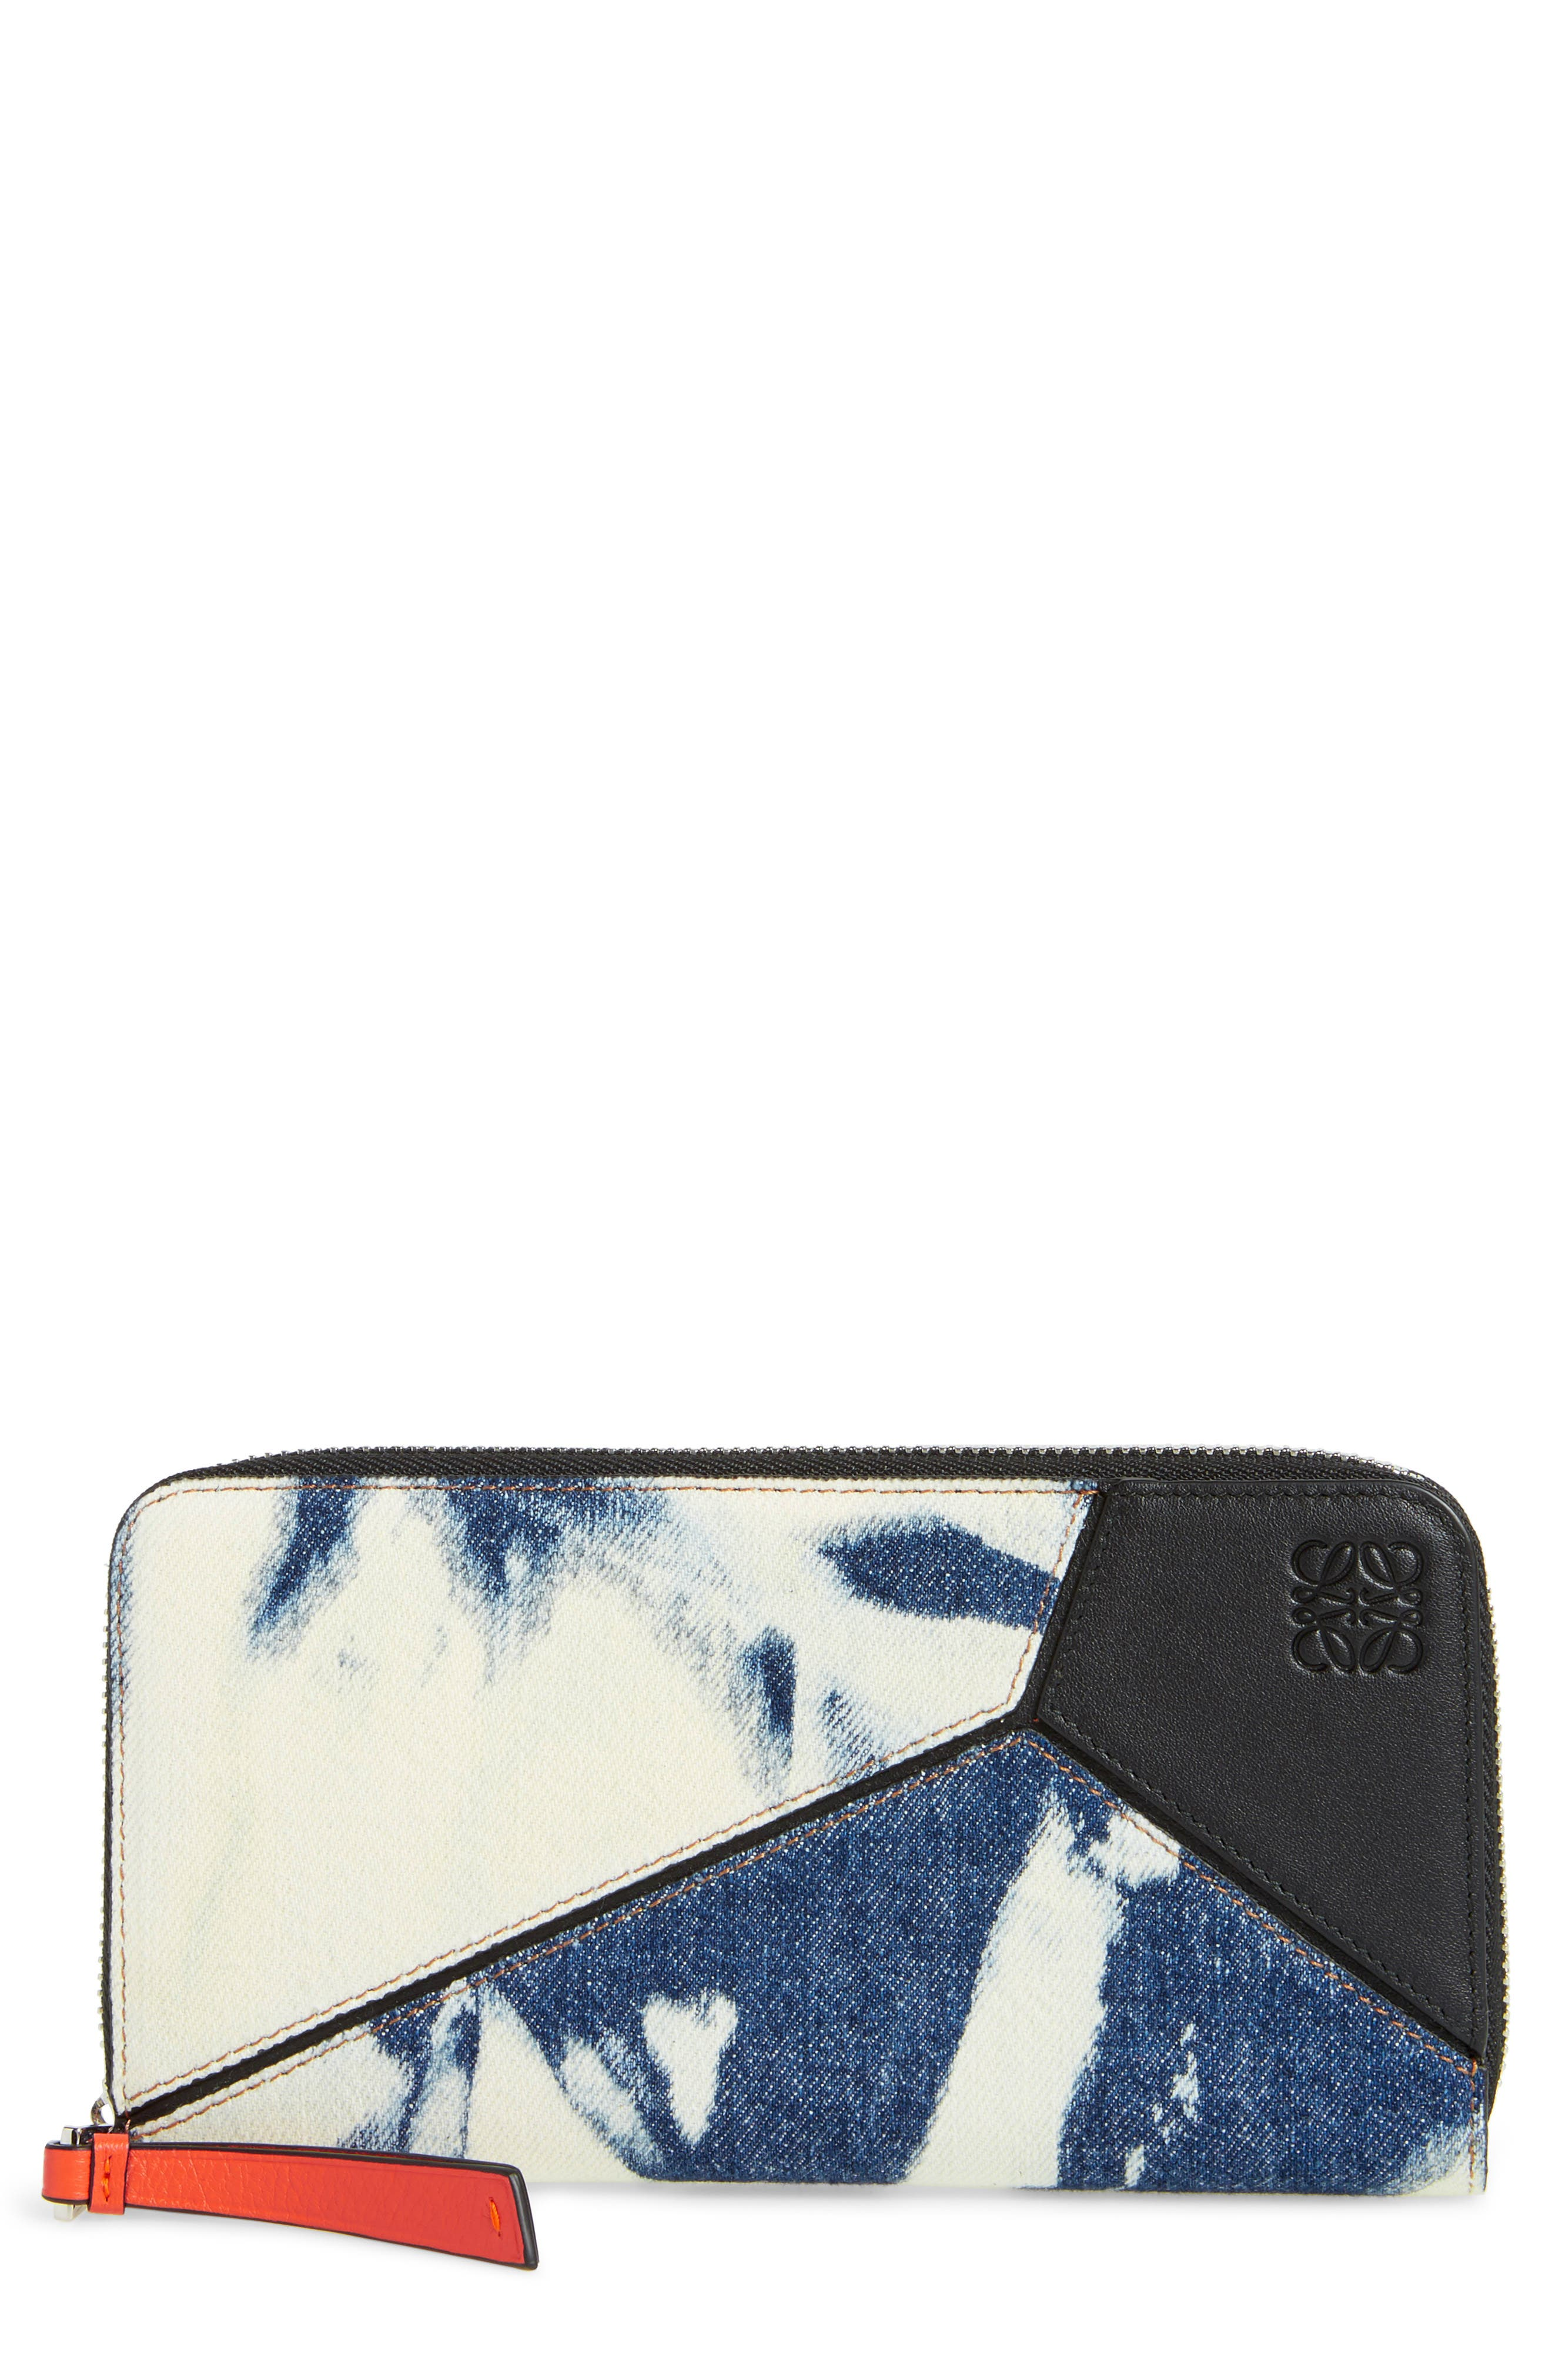 Denim Puzzle Zip Around Leather Wallet,                             Main thumbnail 1, color,                             492